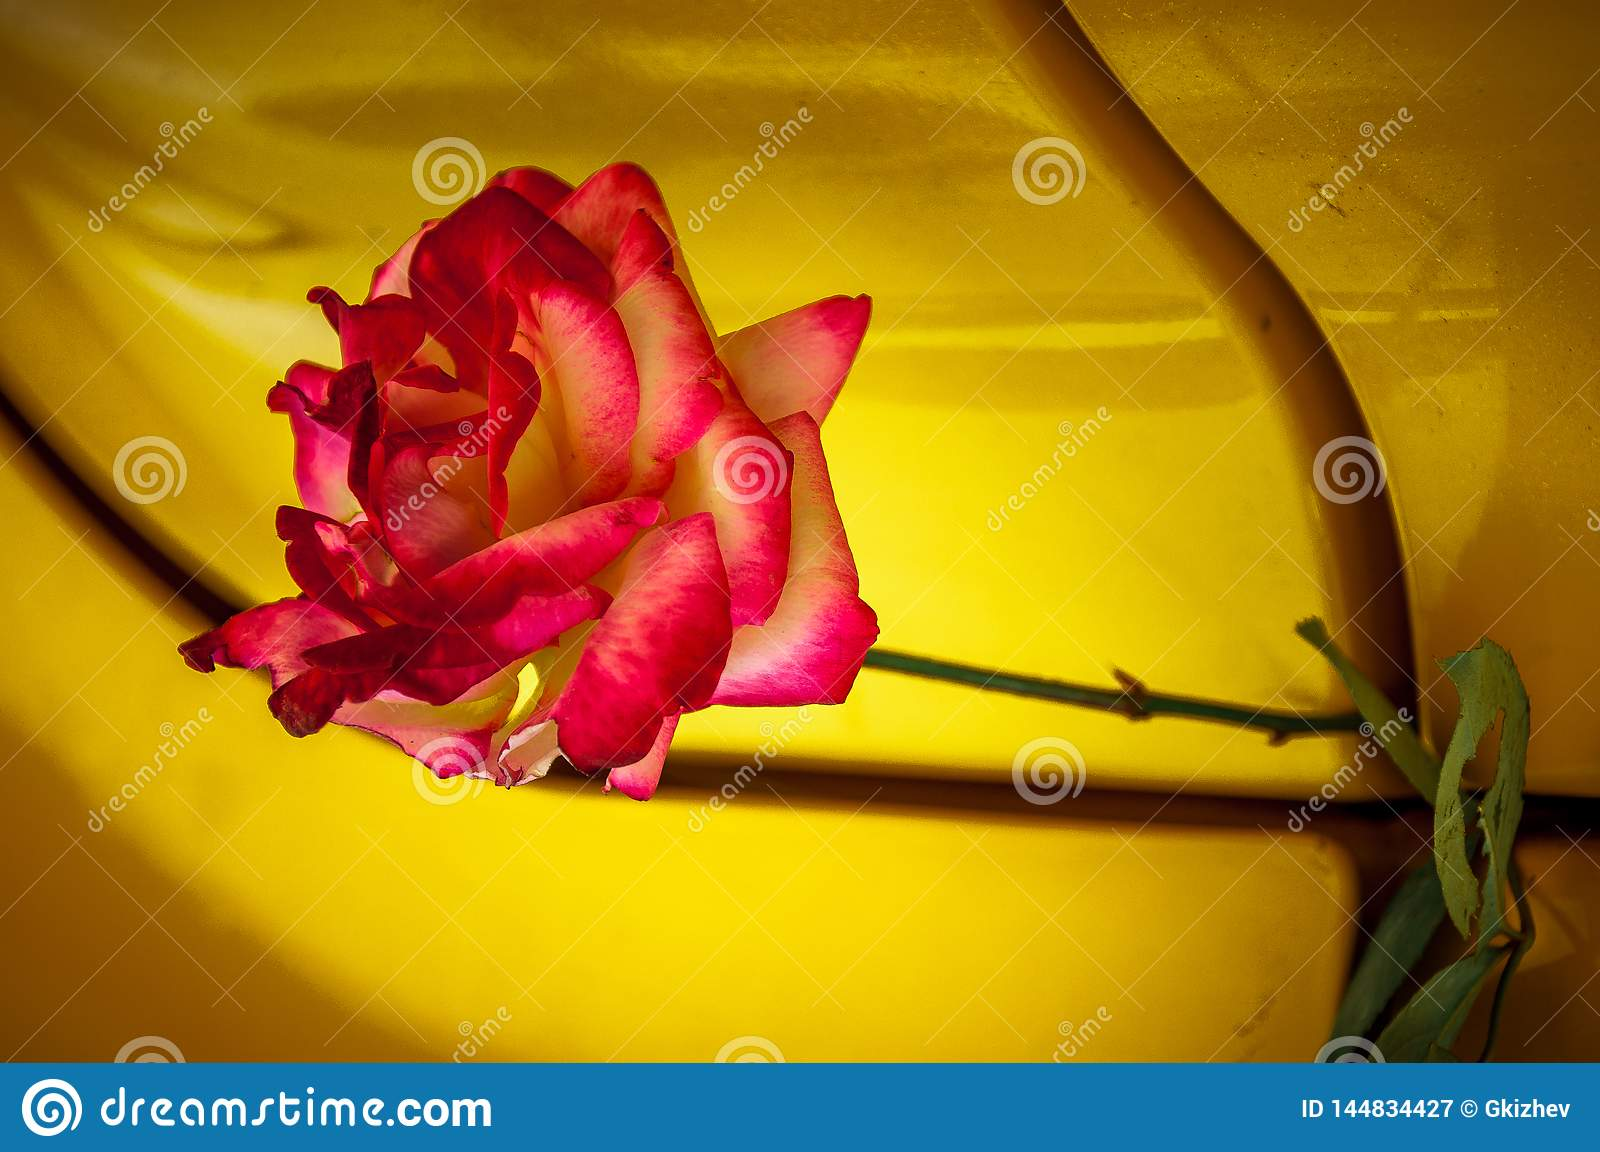 Macro rose with yellow background